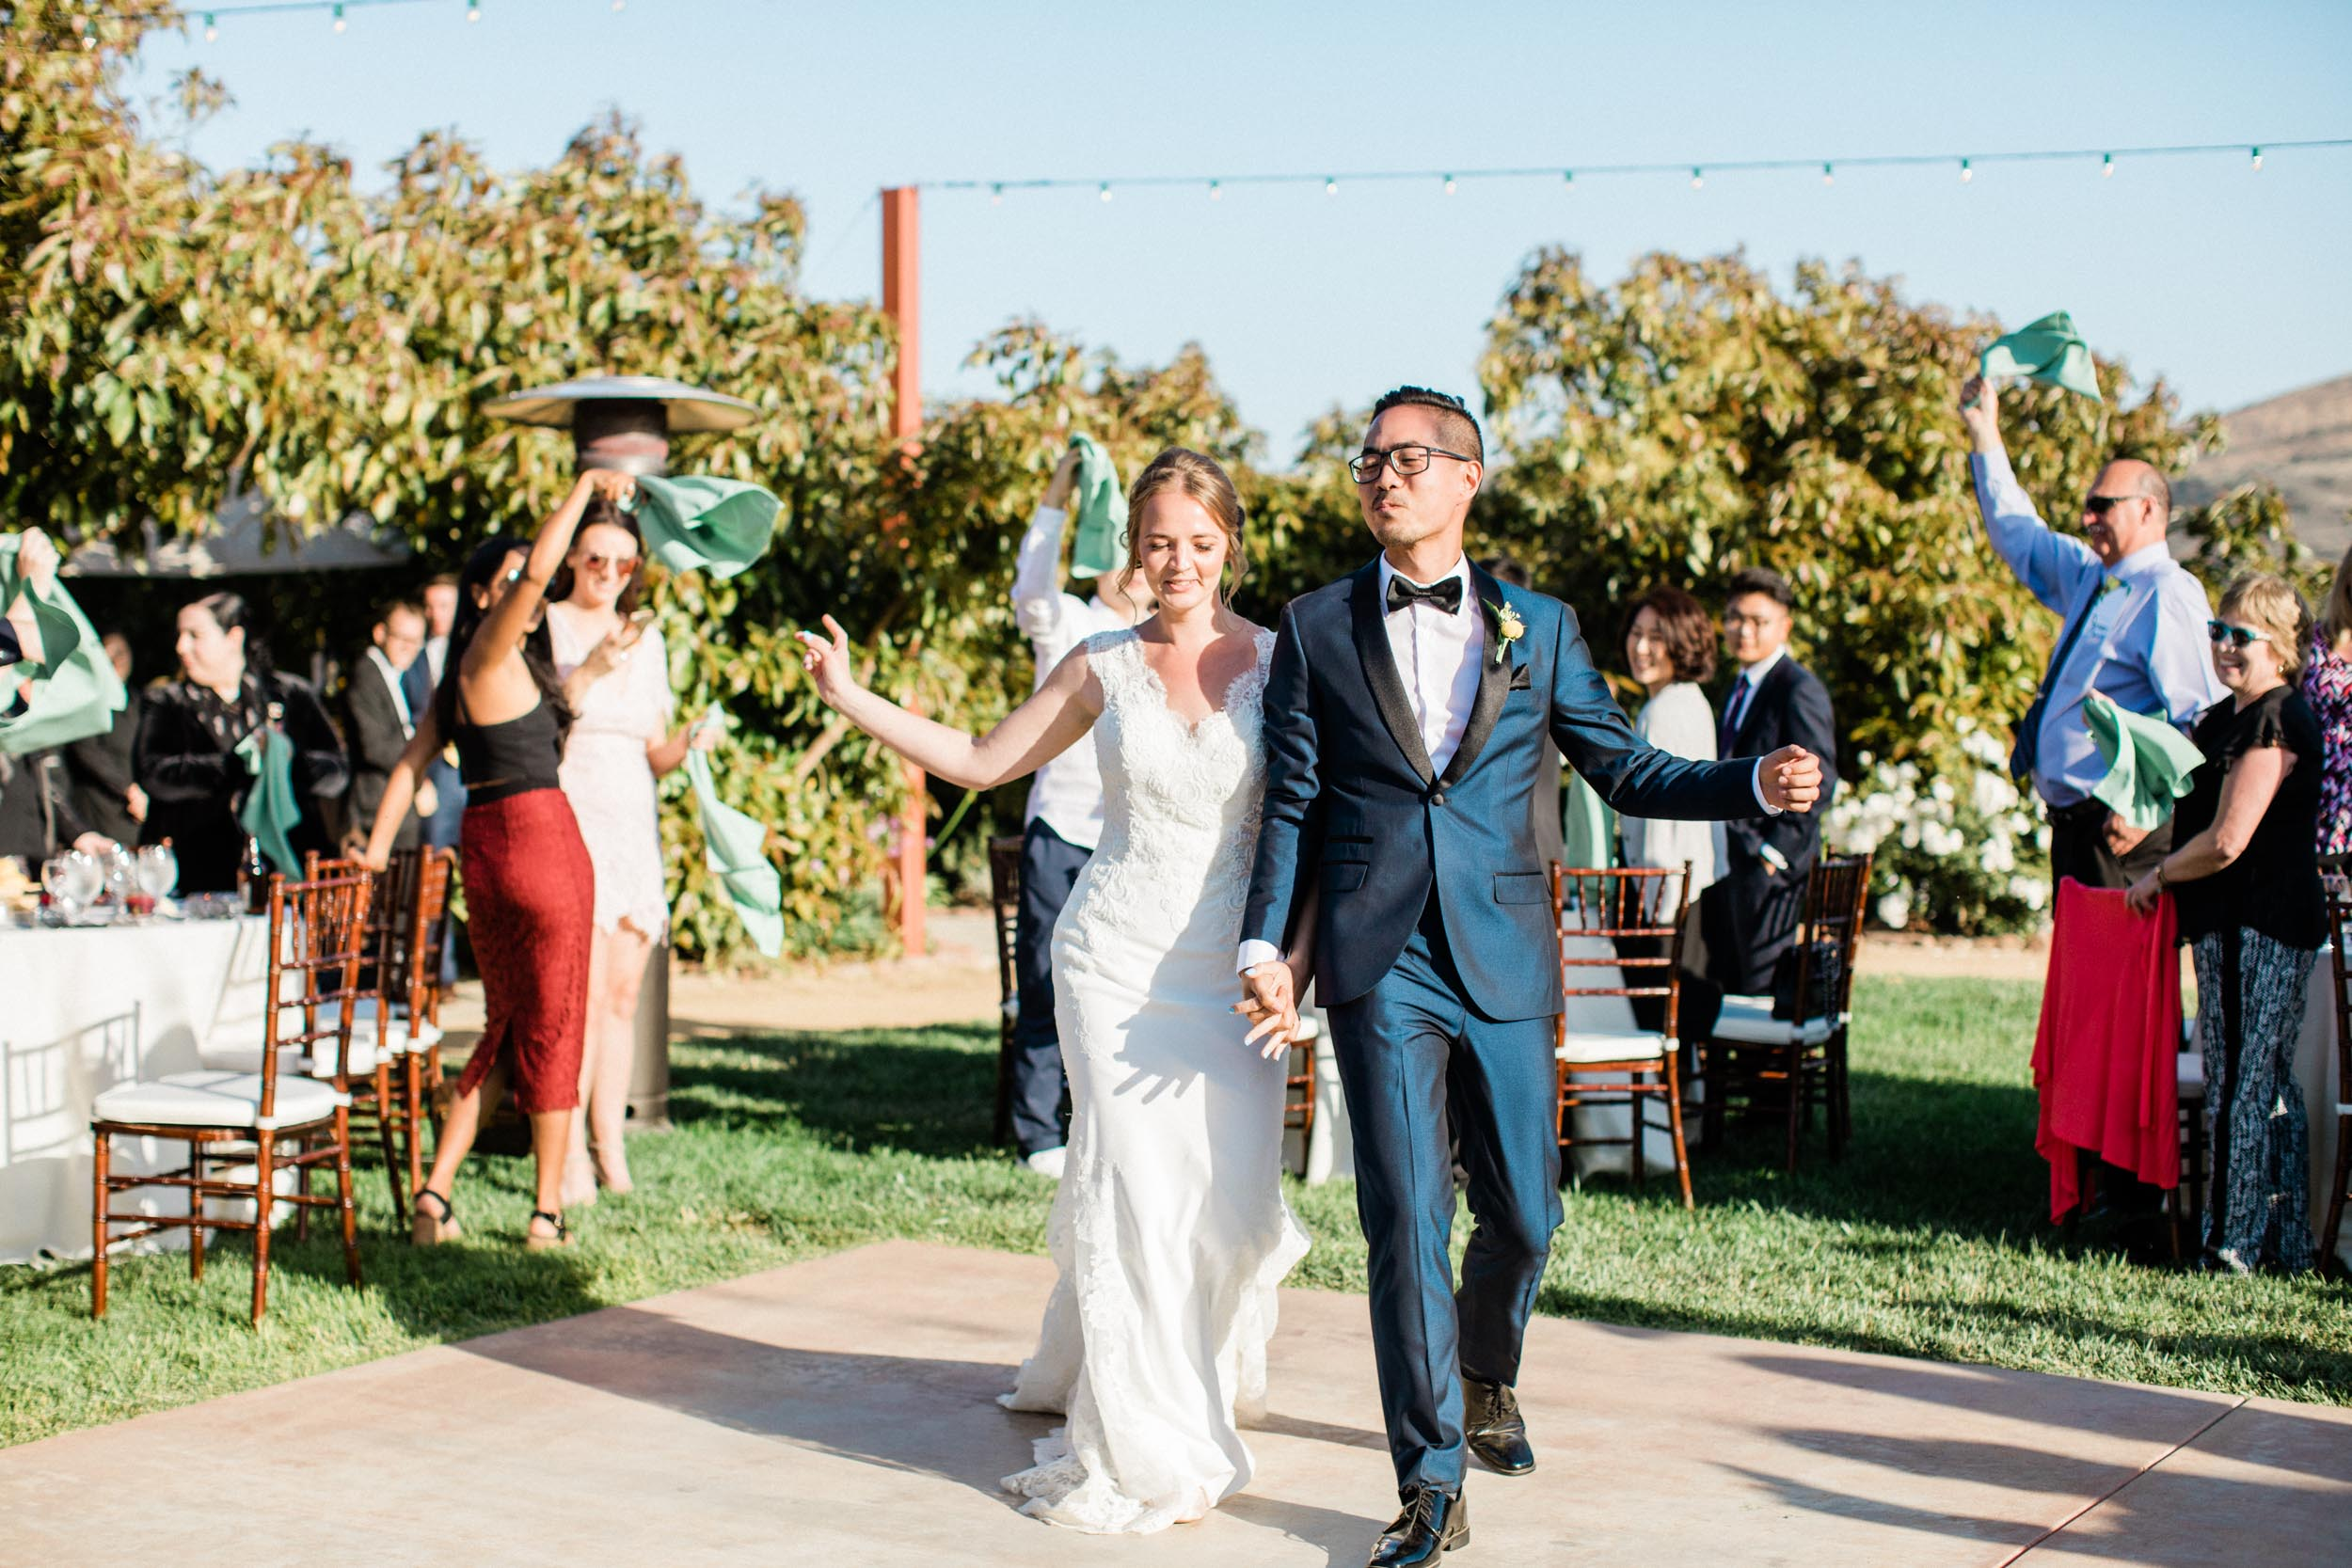 BKM-Photography-Gerry-Ranch-Southern-California-Wedding-0128.jpg